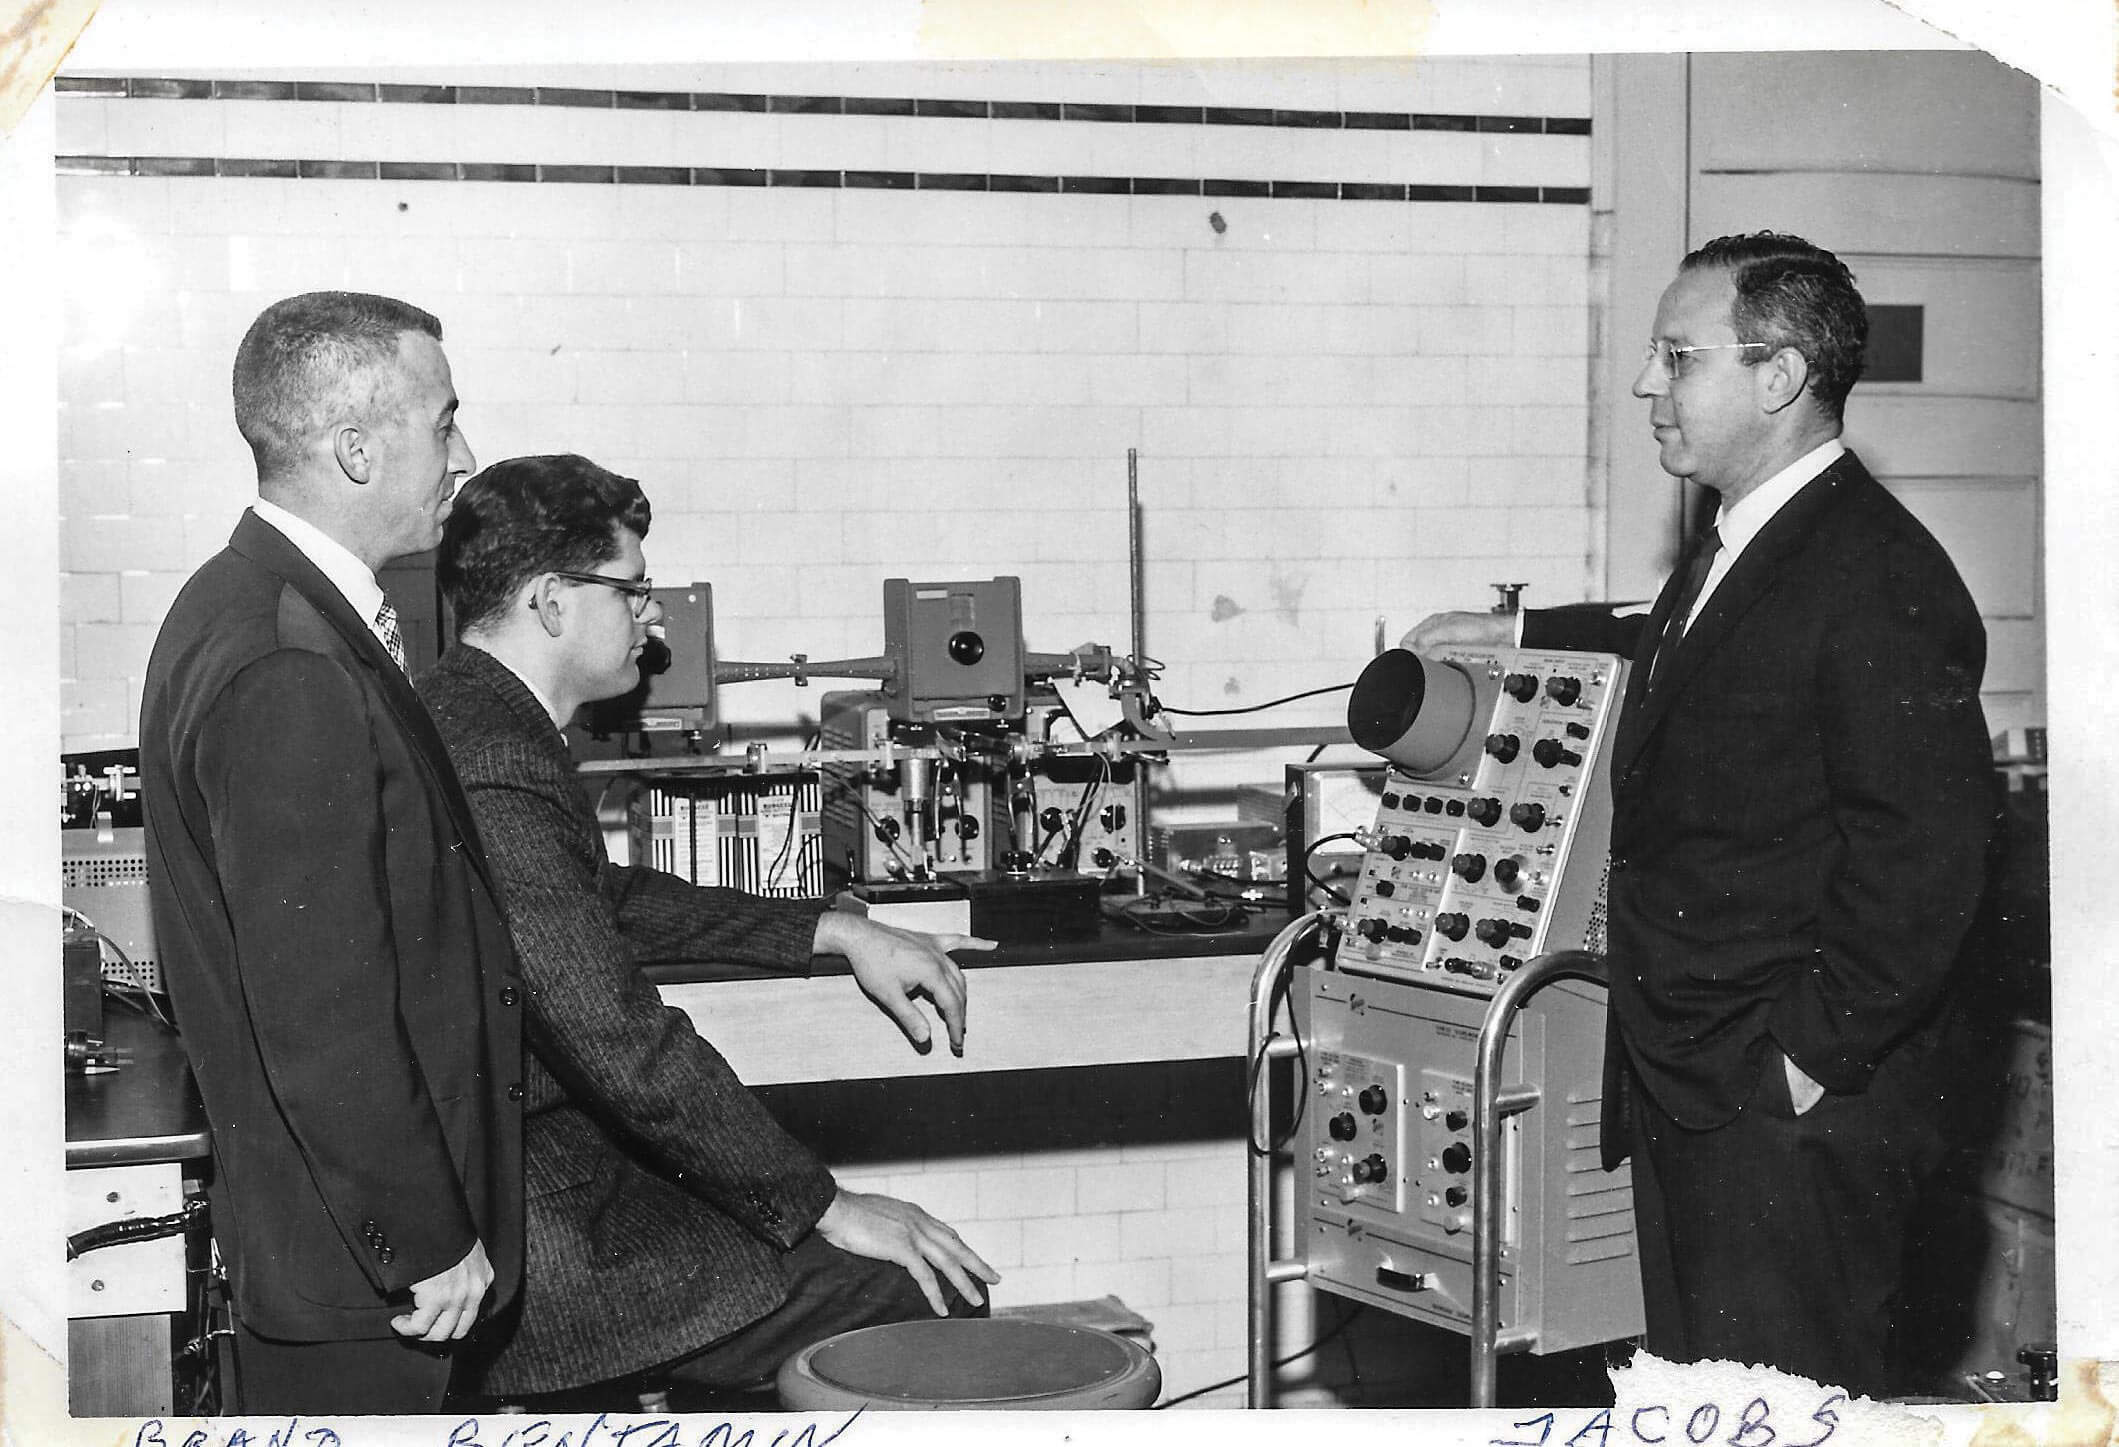 From left, Dr. Frank Brand, Dr. Richard Benjamin, and Dr. Harold Jacobs with an electric measuring device they developed.